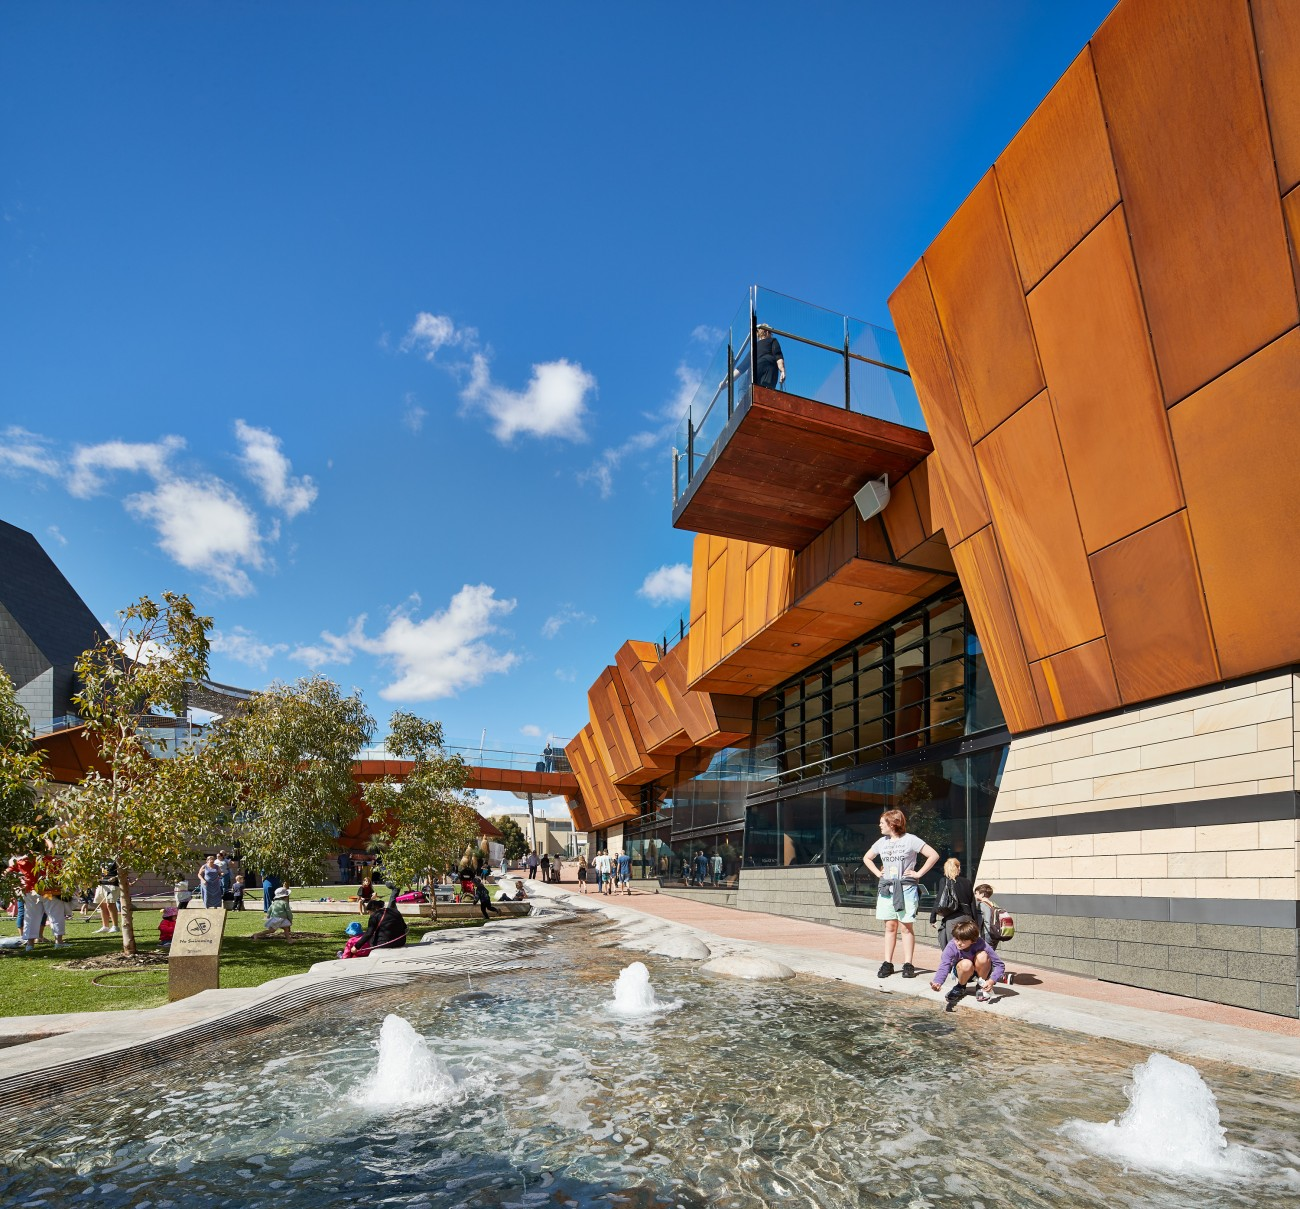 A key feature of Yagan Square in Perth is its 190 metre long water feature.